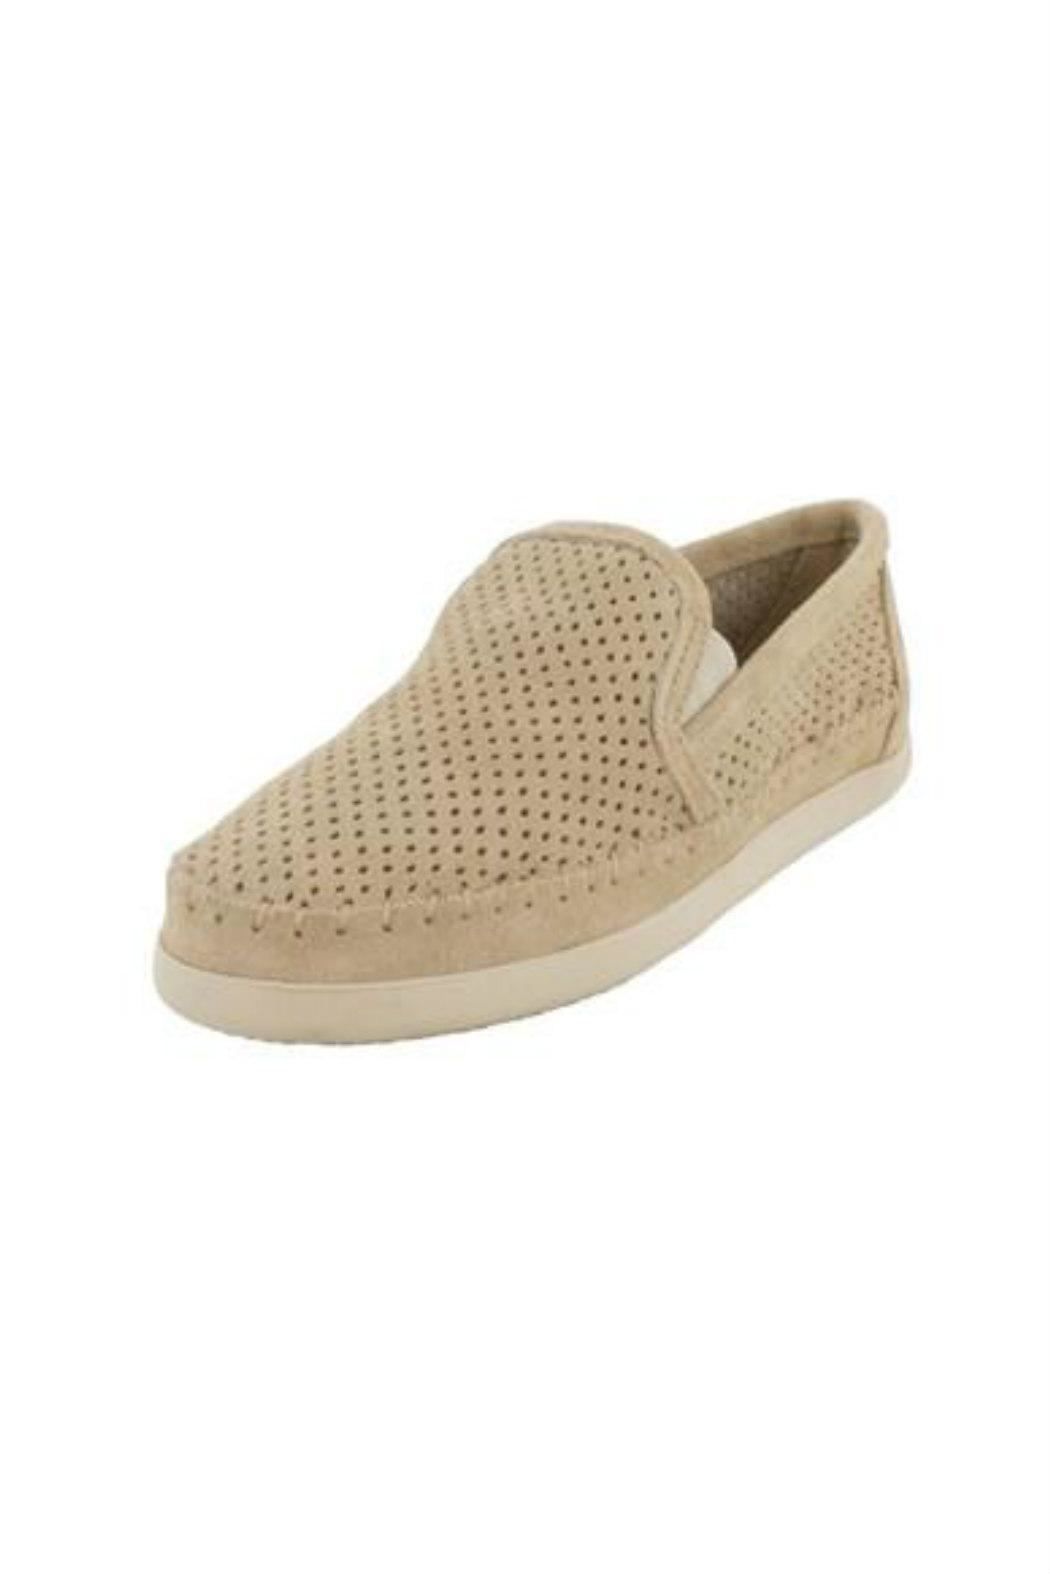 Minnetonka Perforated Suede Sneaker - Main Image